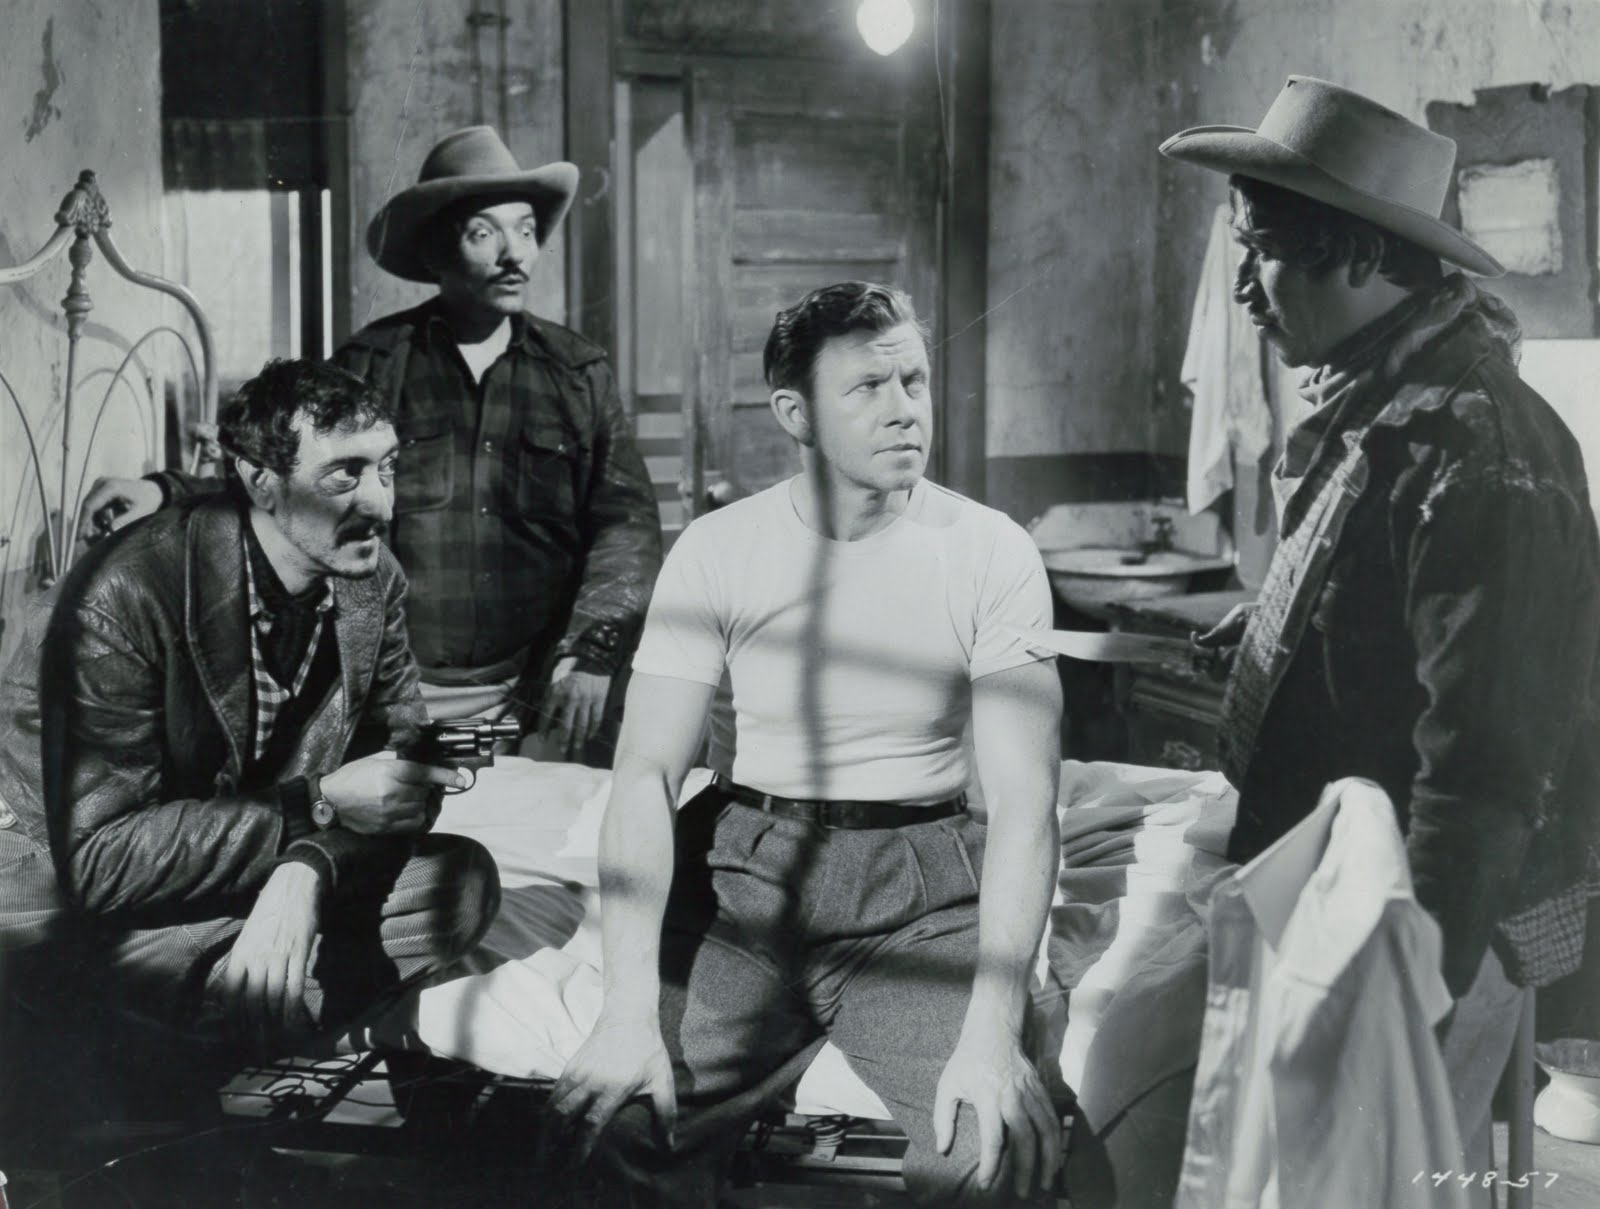 Anthony Mann's Border Incident